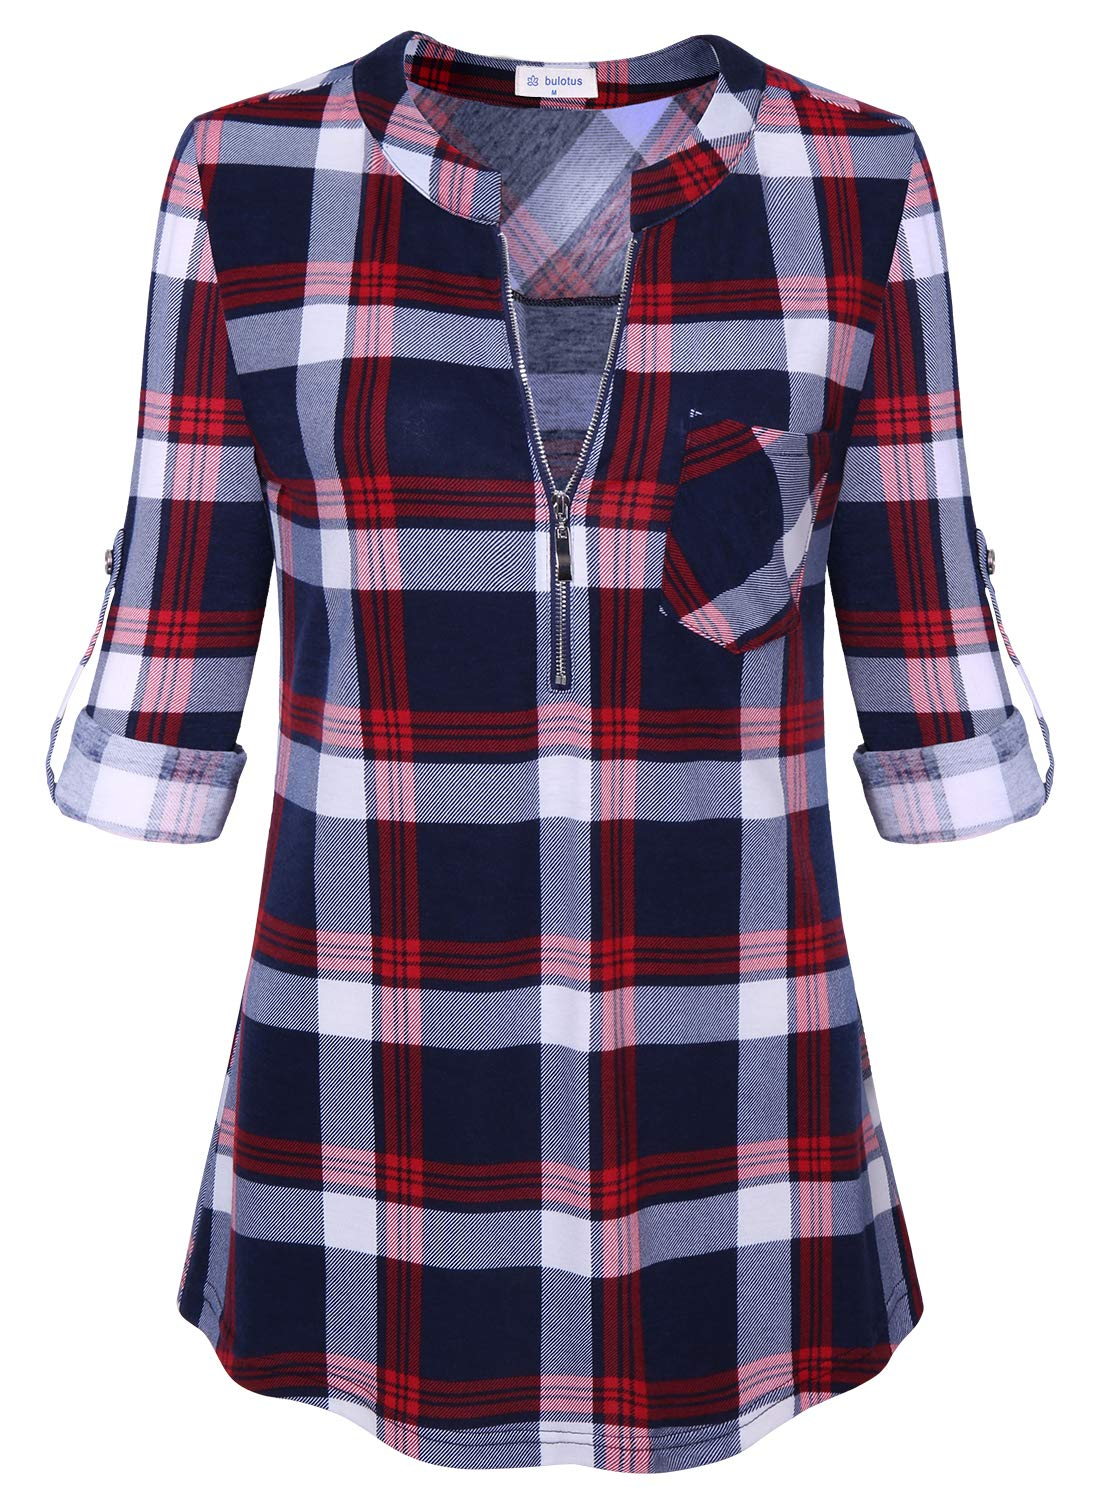 Bulotus Long Sleeve V Neck Allover Plaid Relaxed Classic Tunic Shirt for Women Red L